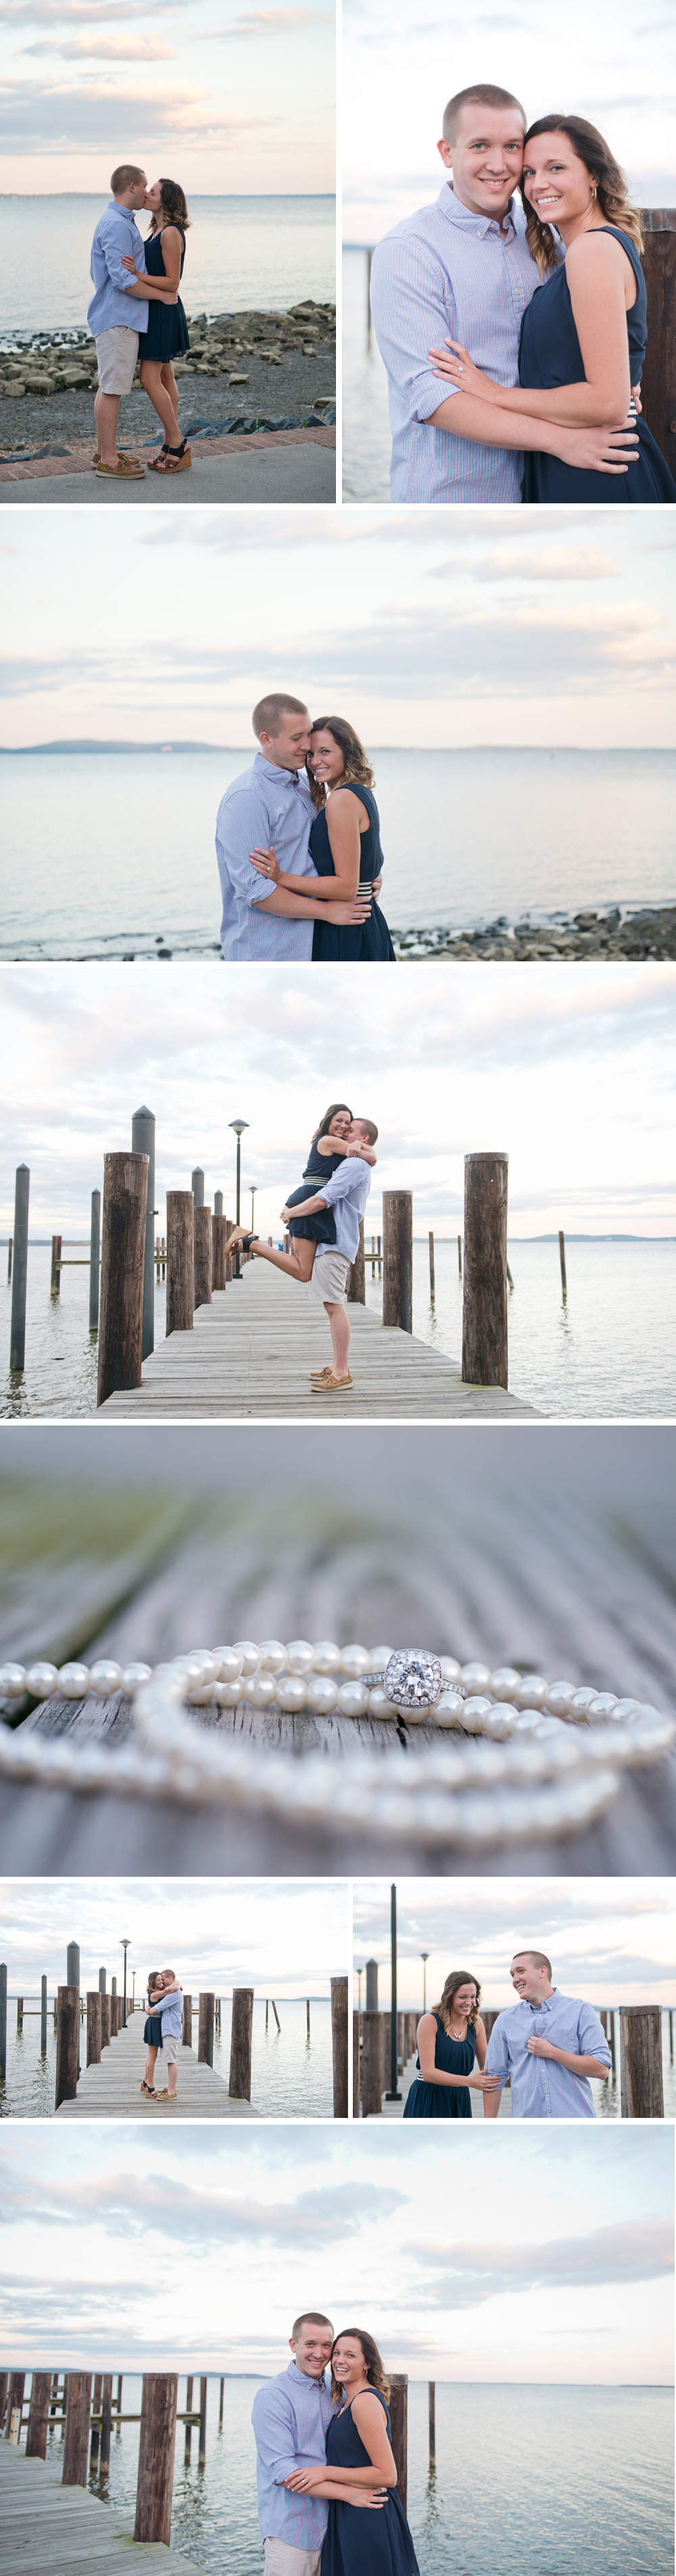 Harford_County_Engagement-12